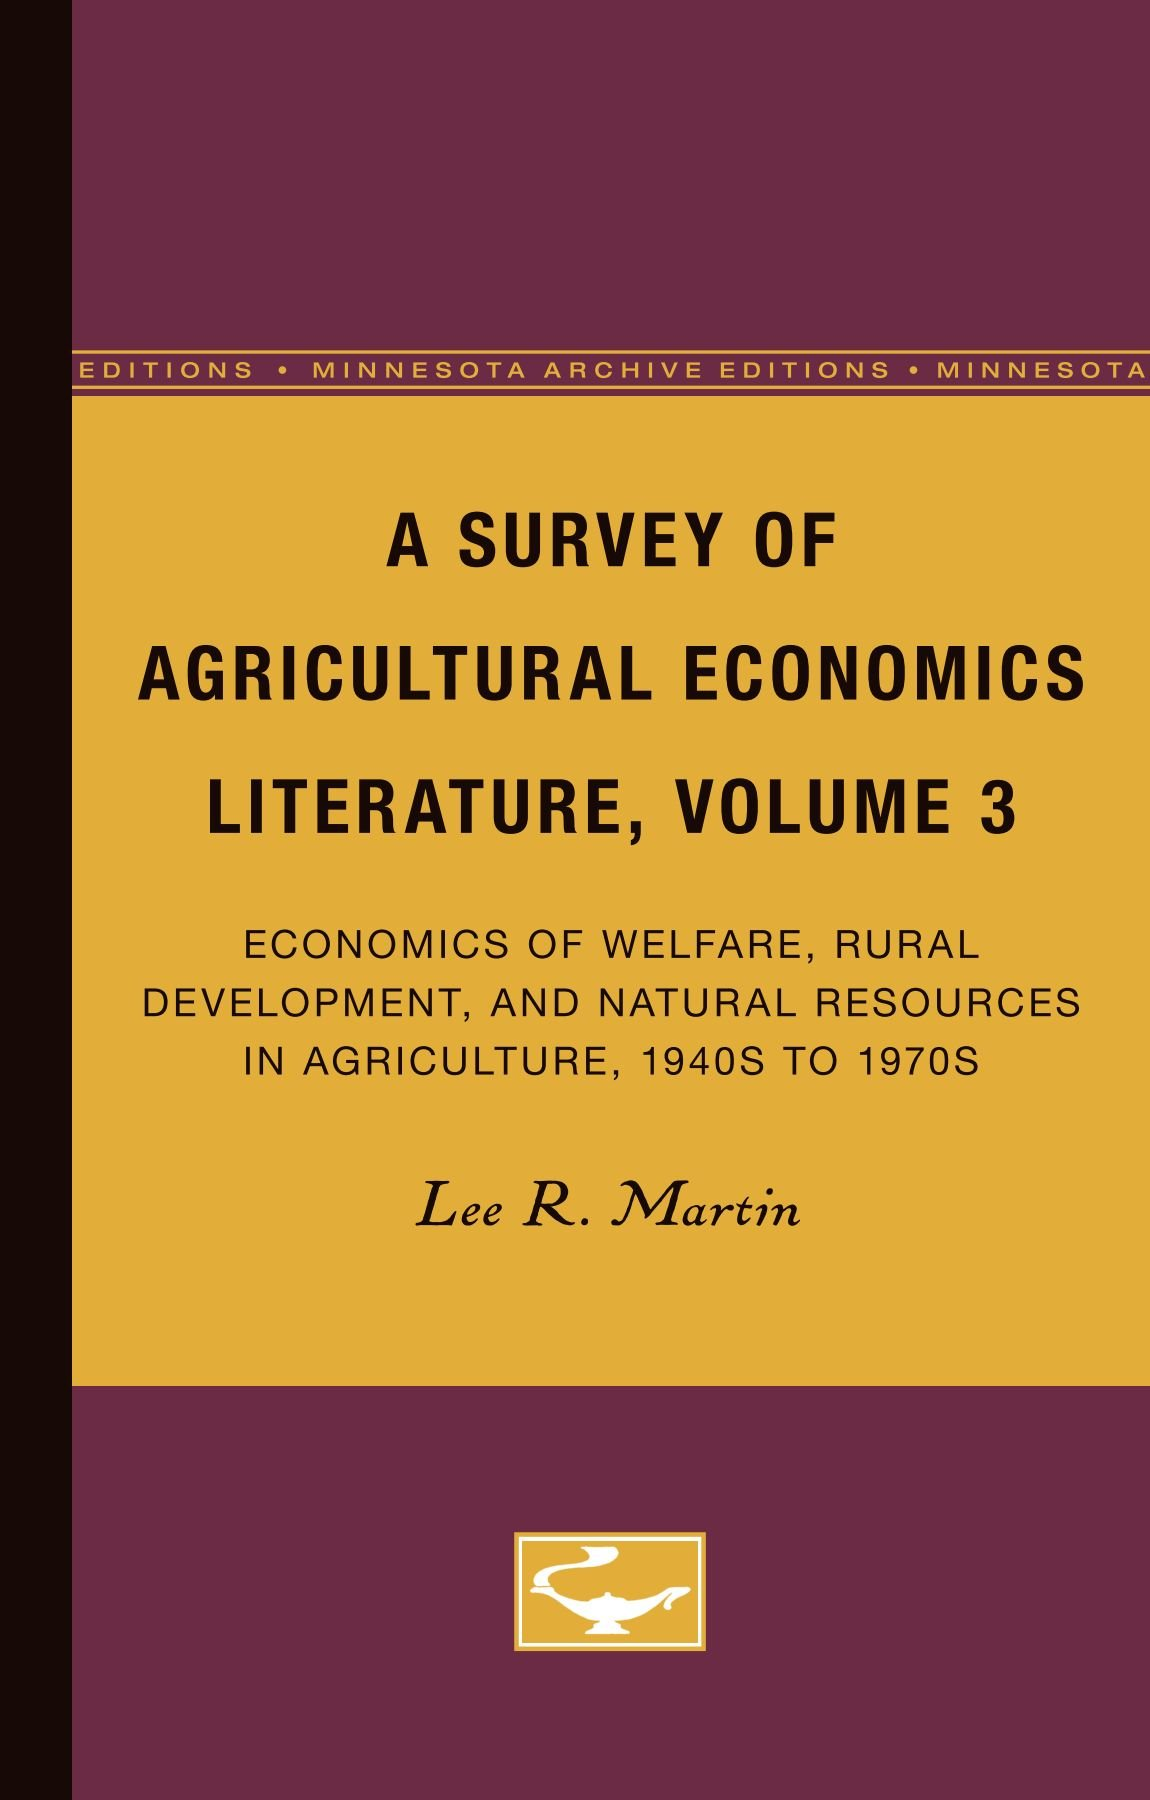 economics of welfare rural development and natural resources in agriculture 1940s to 1970s martin lee r